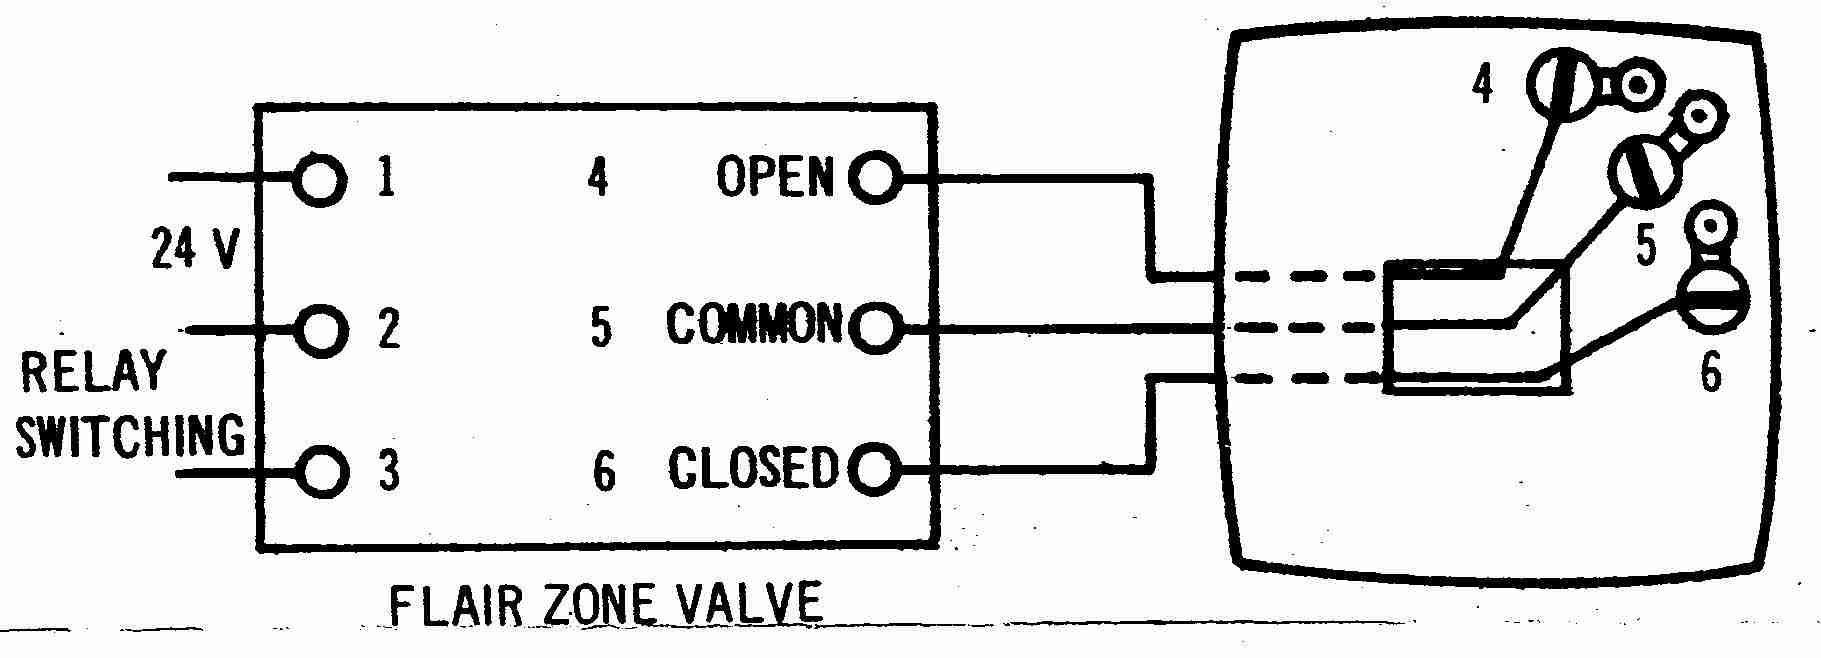 4 Wire Zone Valve Diagram - Wiring Diagrams Hubs - Honeywell Zone Valve Wiring Diagram